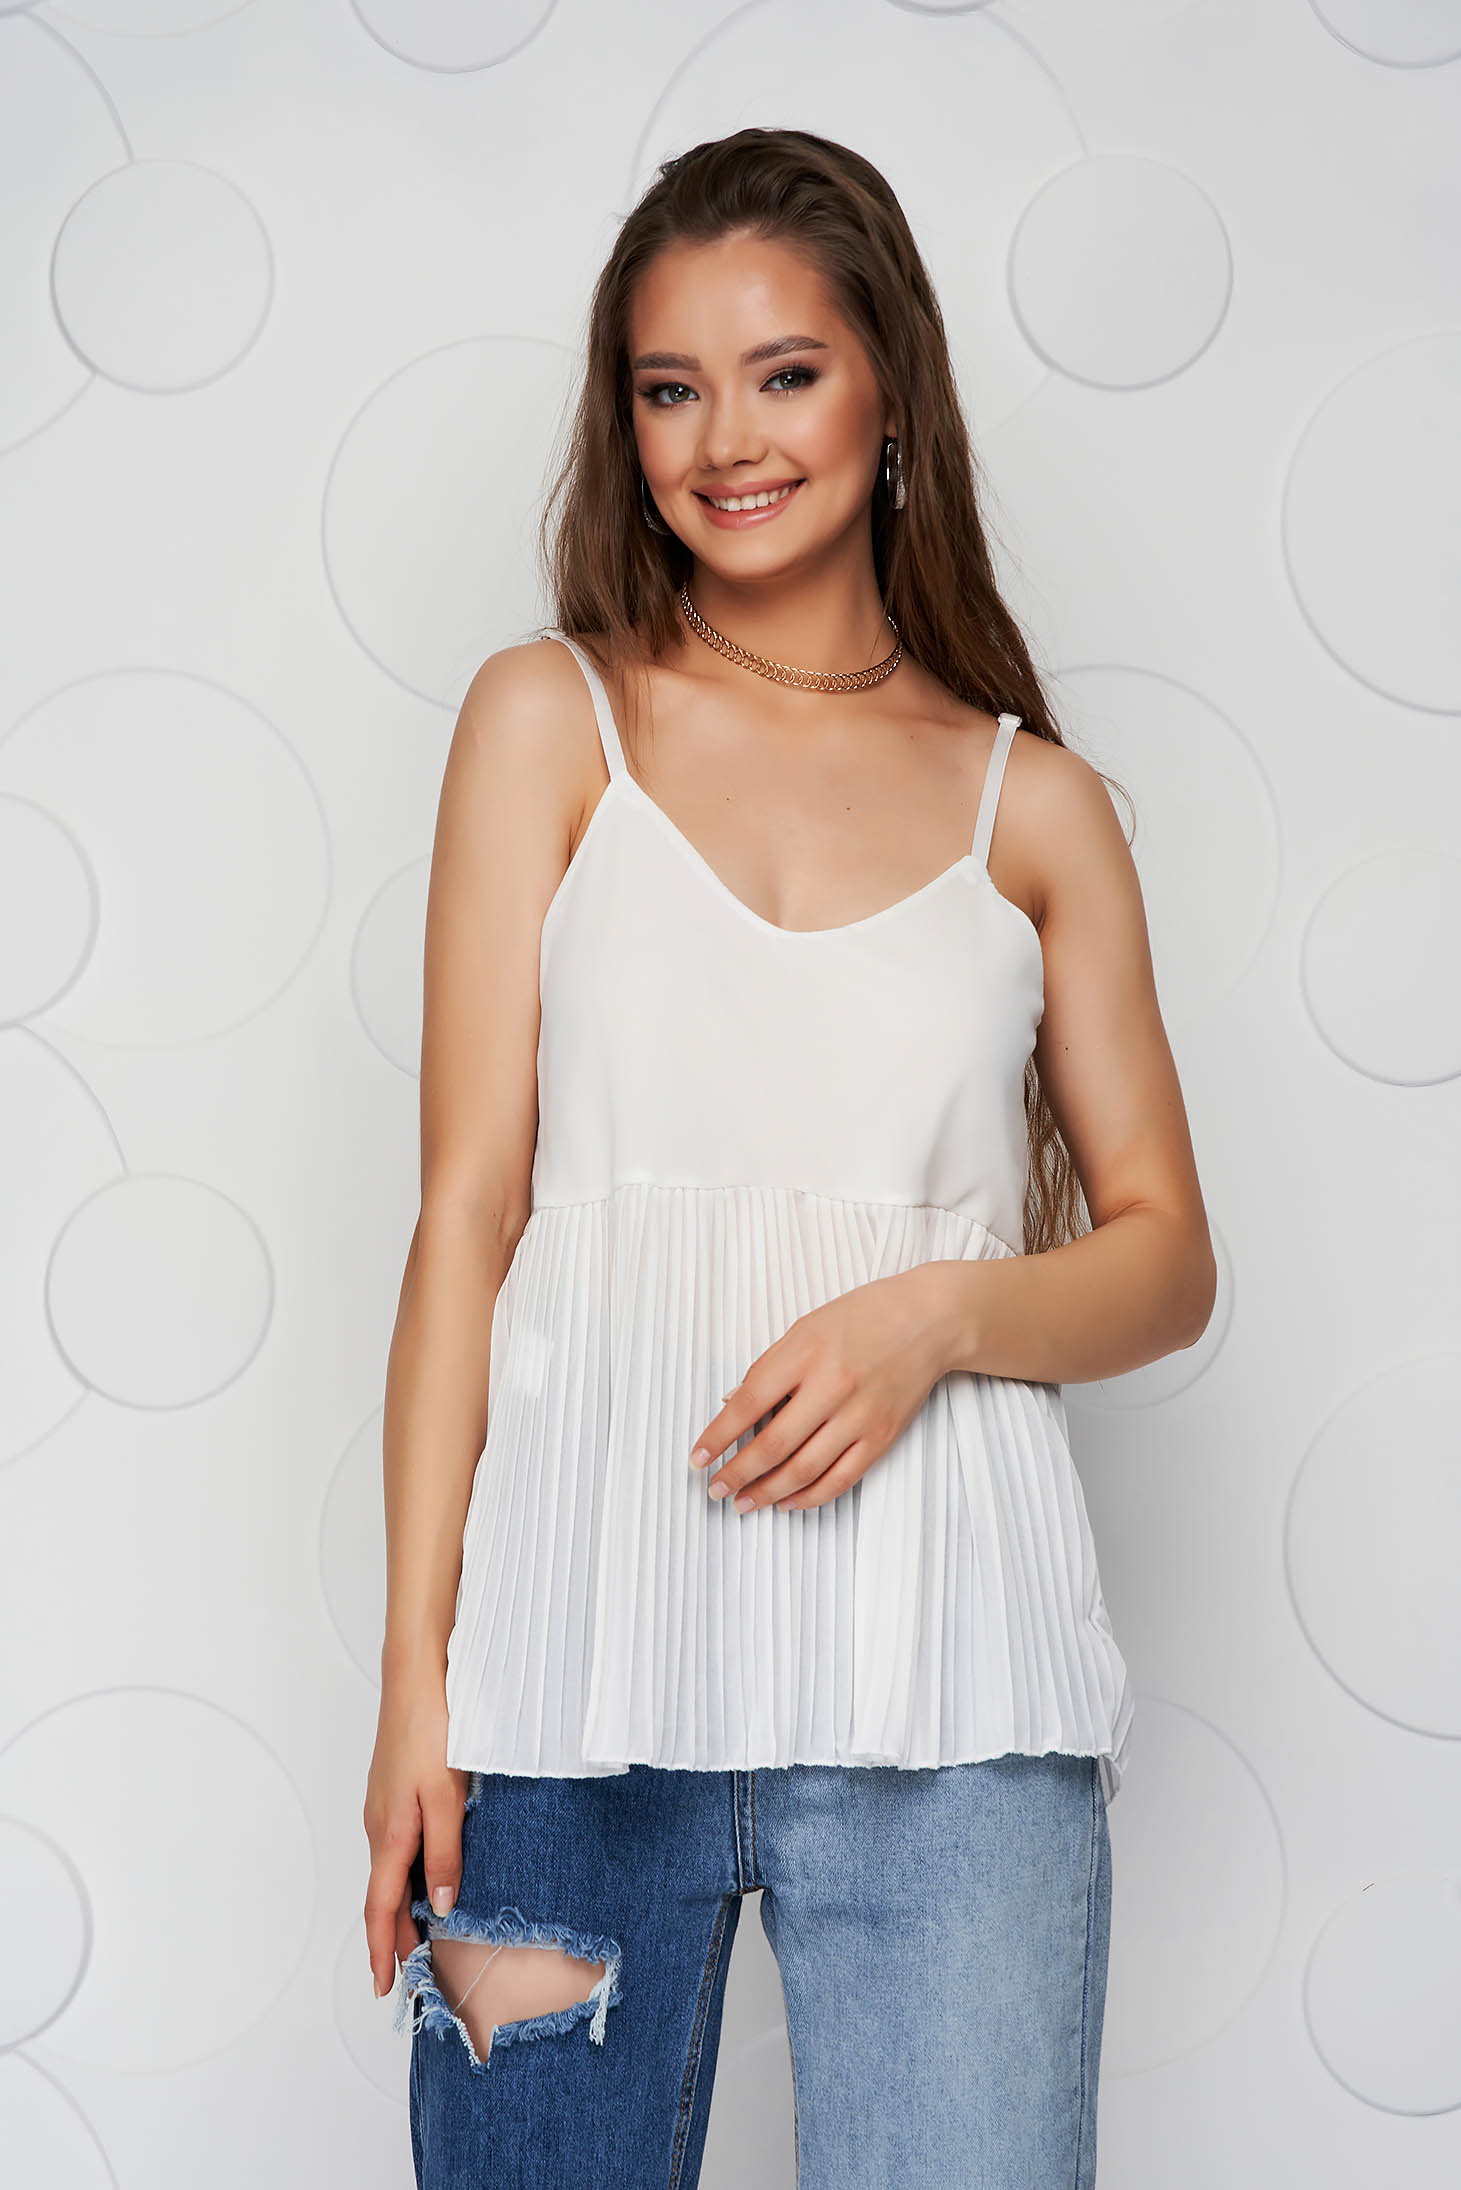 White top shirt loose fit folded up from veil fabric with straps